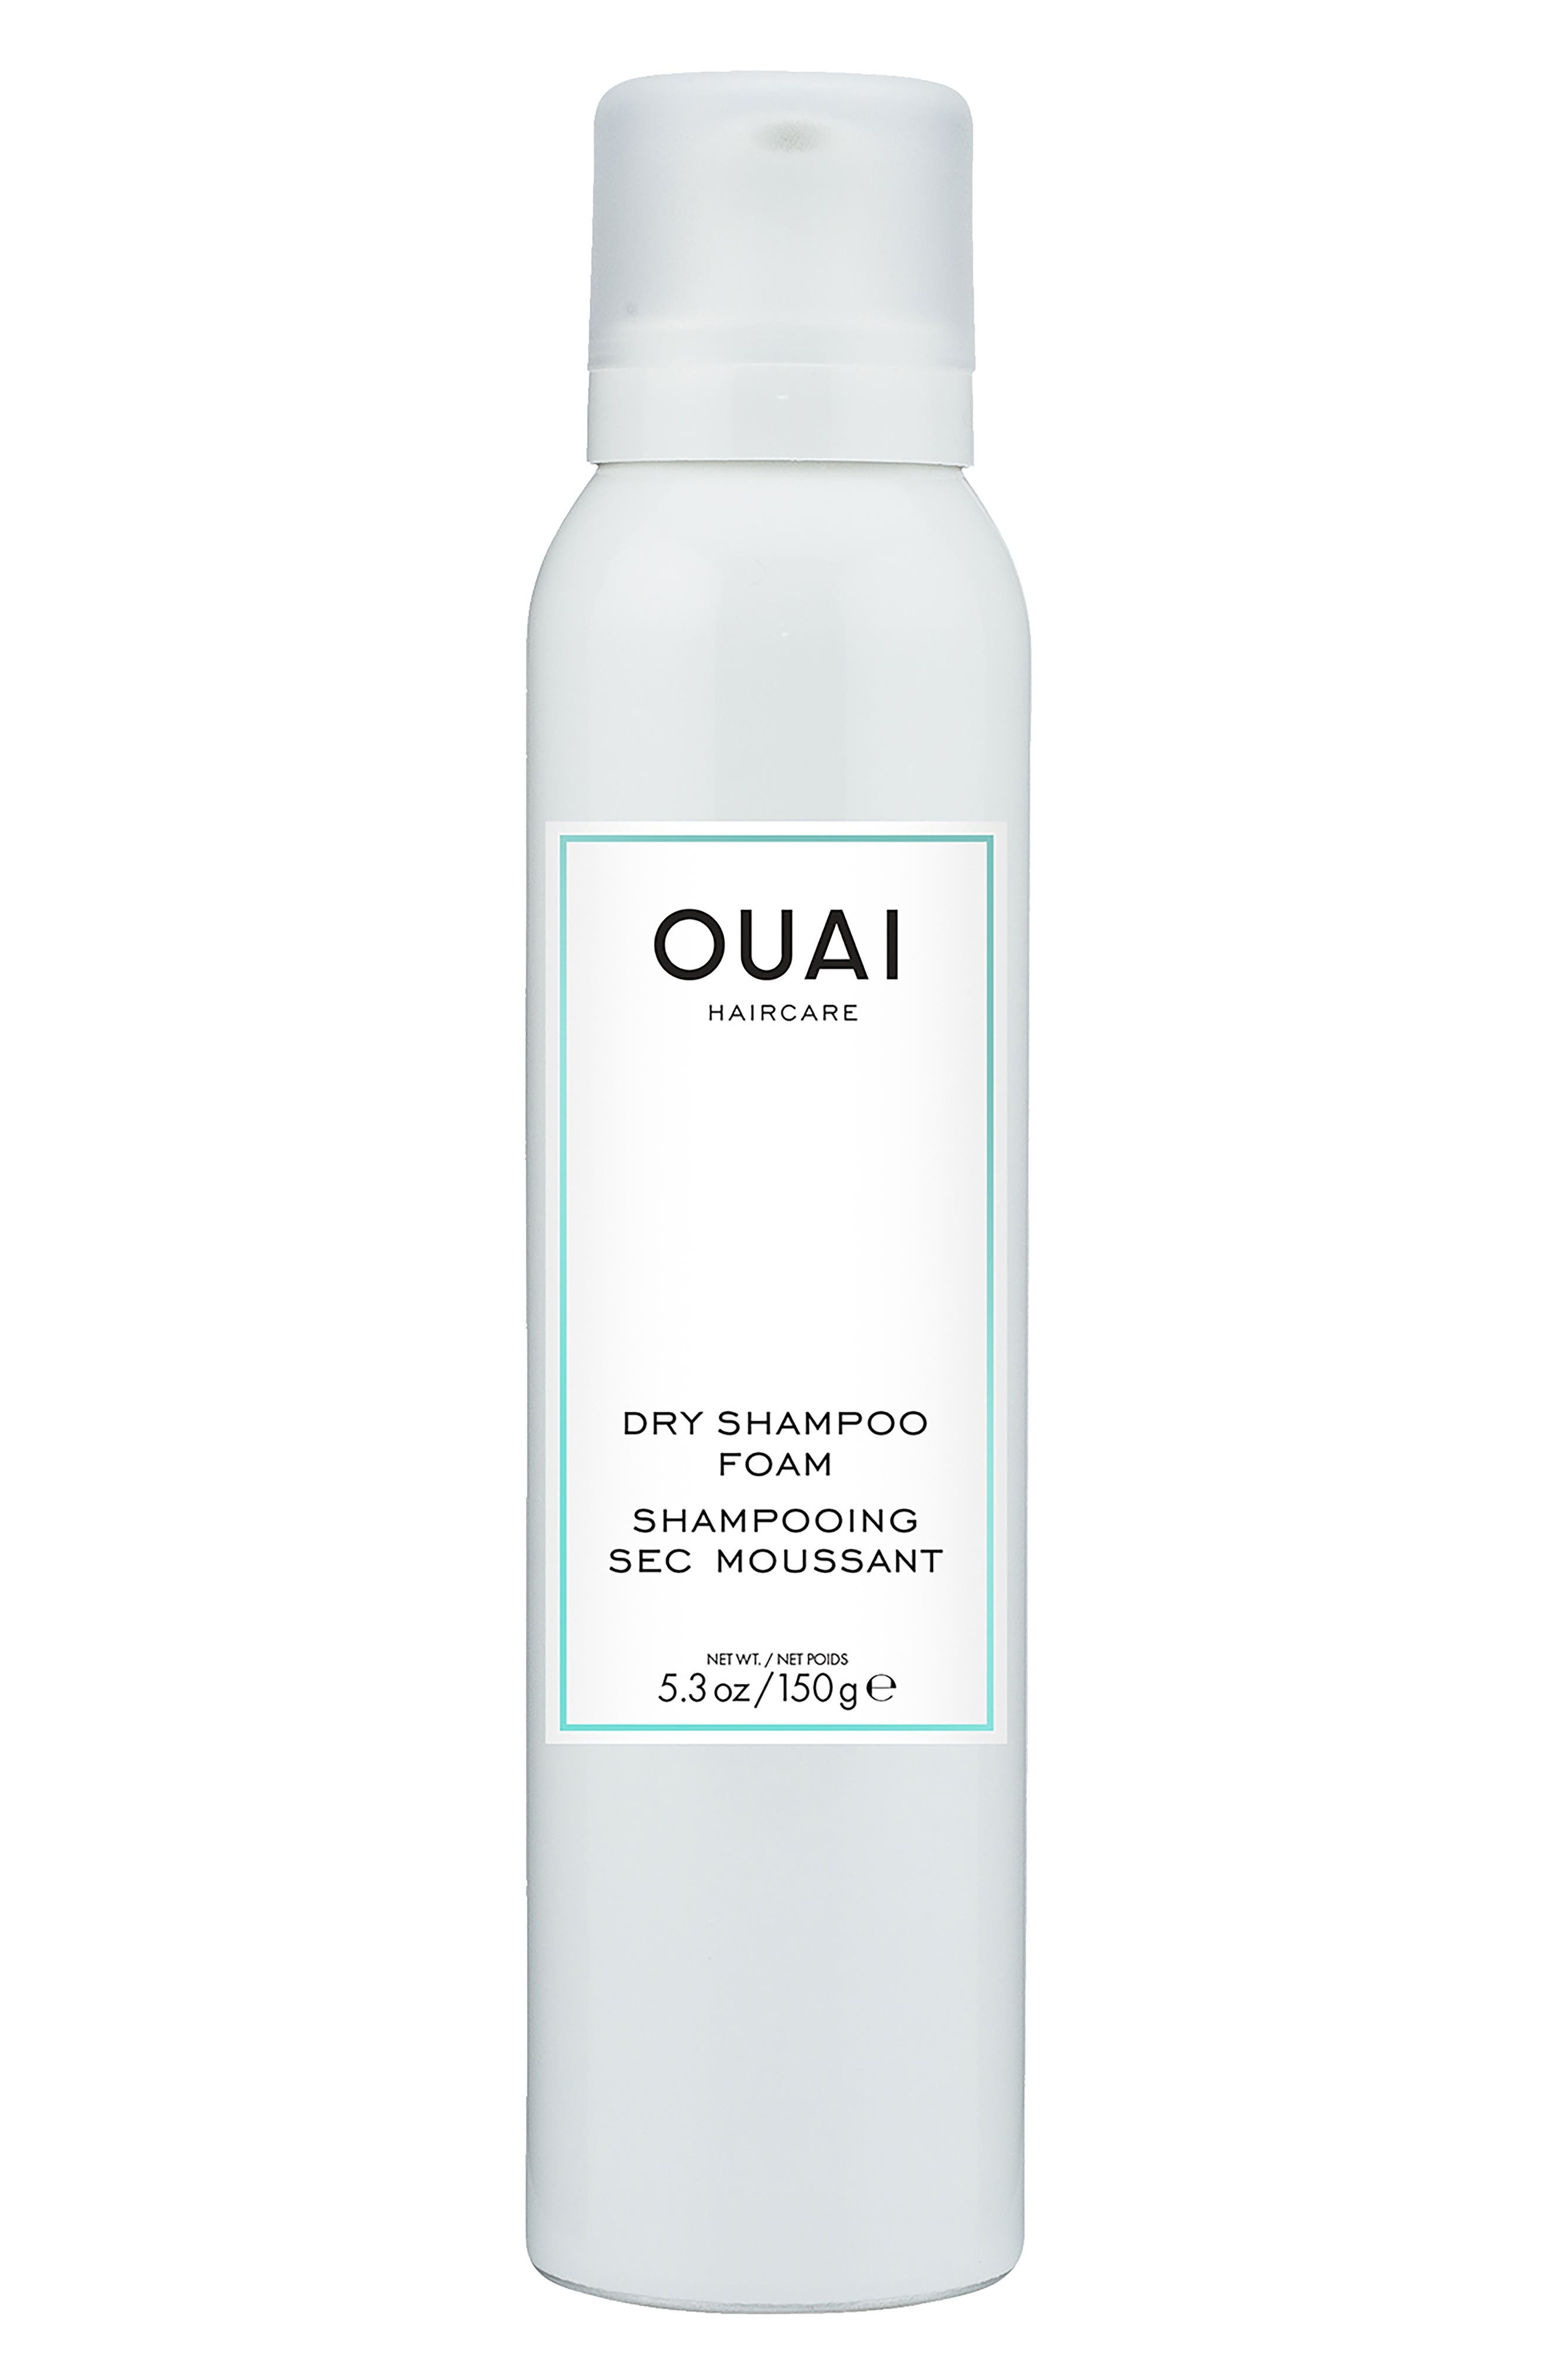 Alternate Image 1 Selected - SPACE.NK.apothecary OUAI Dry Shampoo Foam